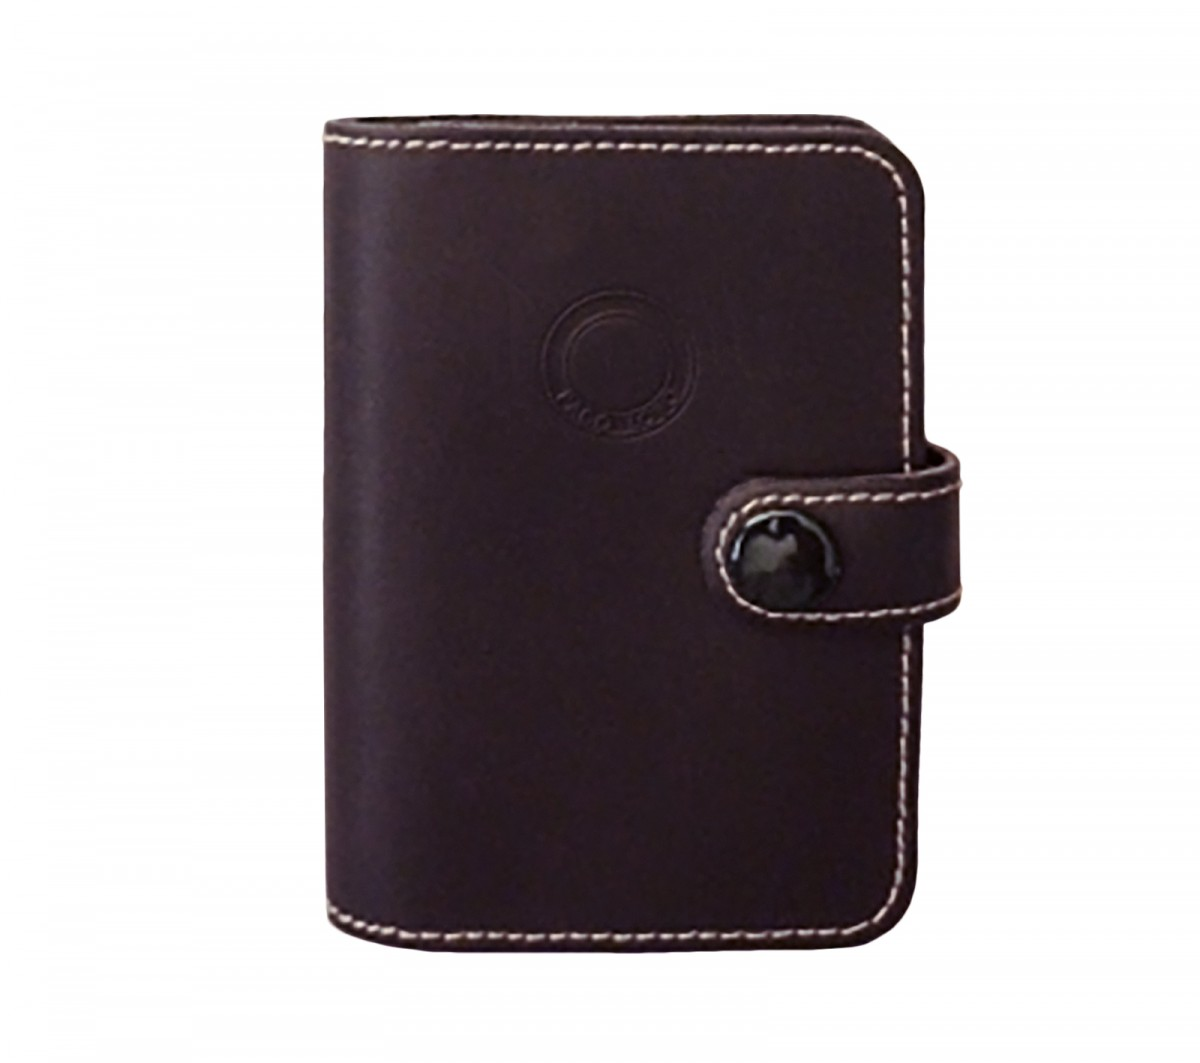 Medium wallet convertibleTroika